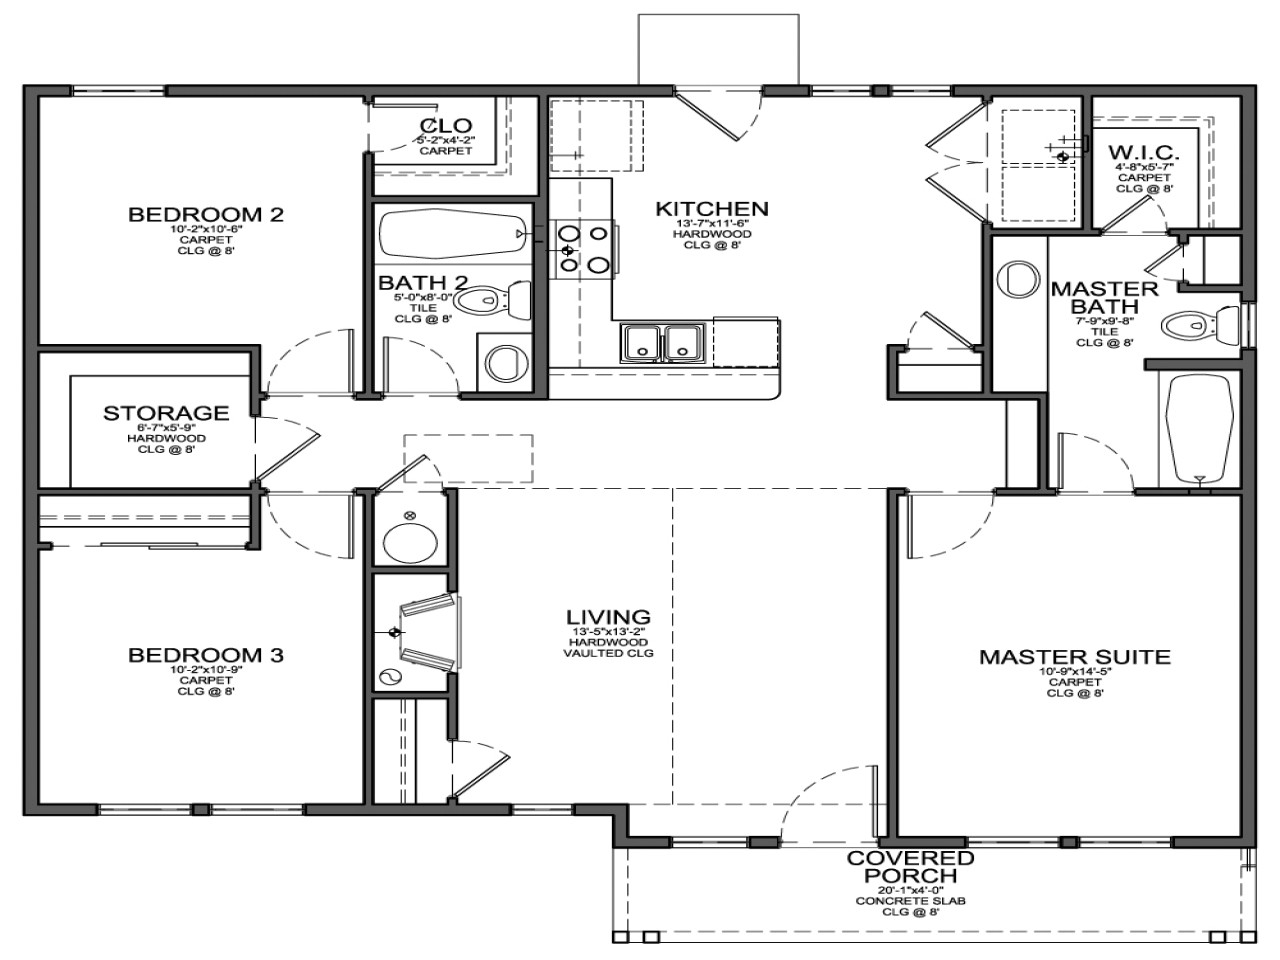 Small Rental House Plans Small 3 Bedroom House Floor Plans 3 Bedroom Houses for